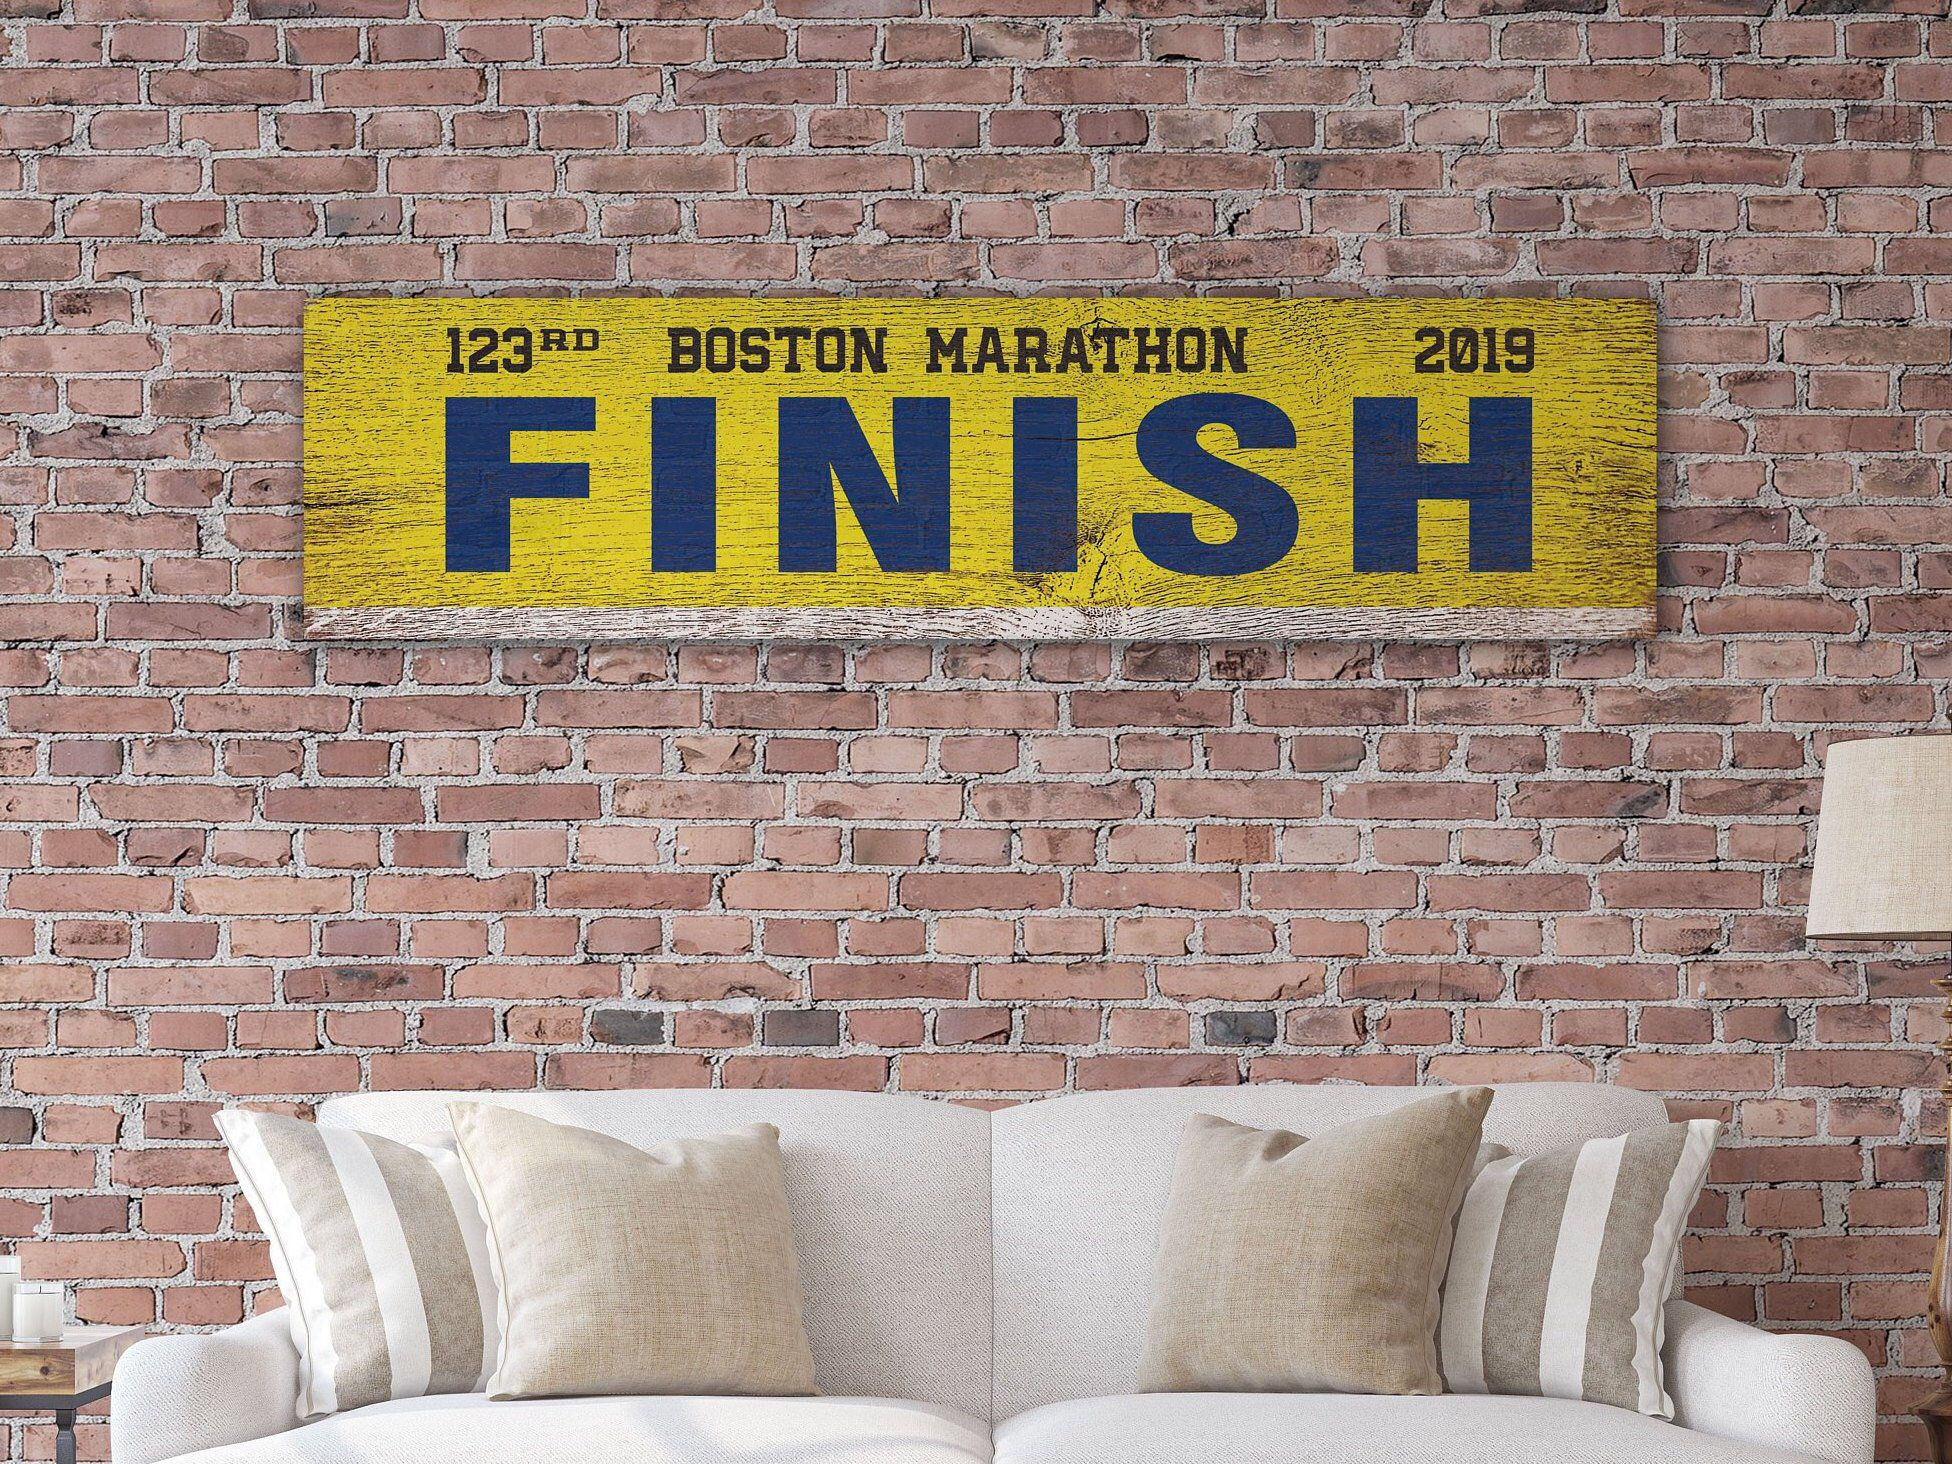 Excited to share this item from my etsy shop boston